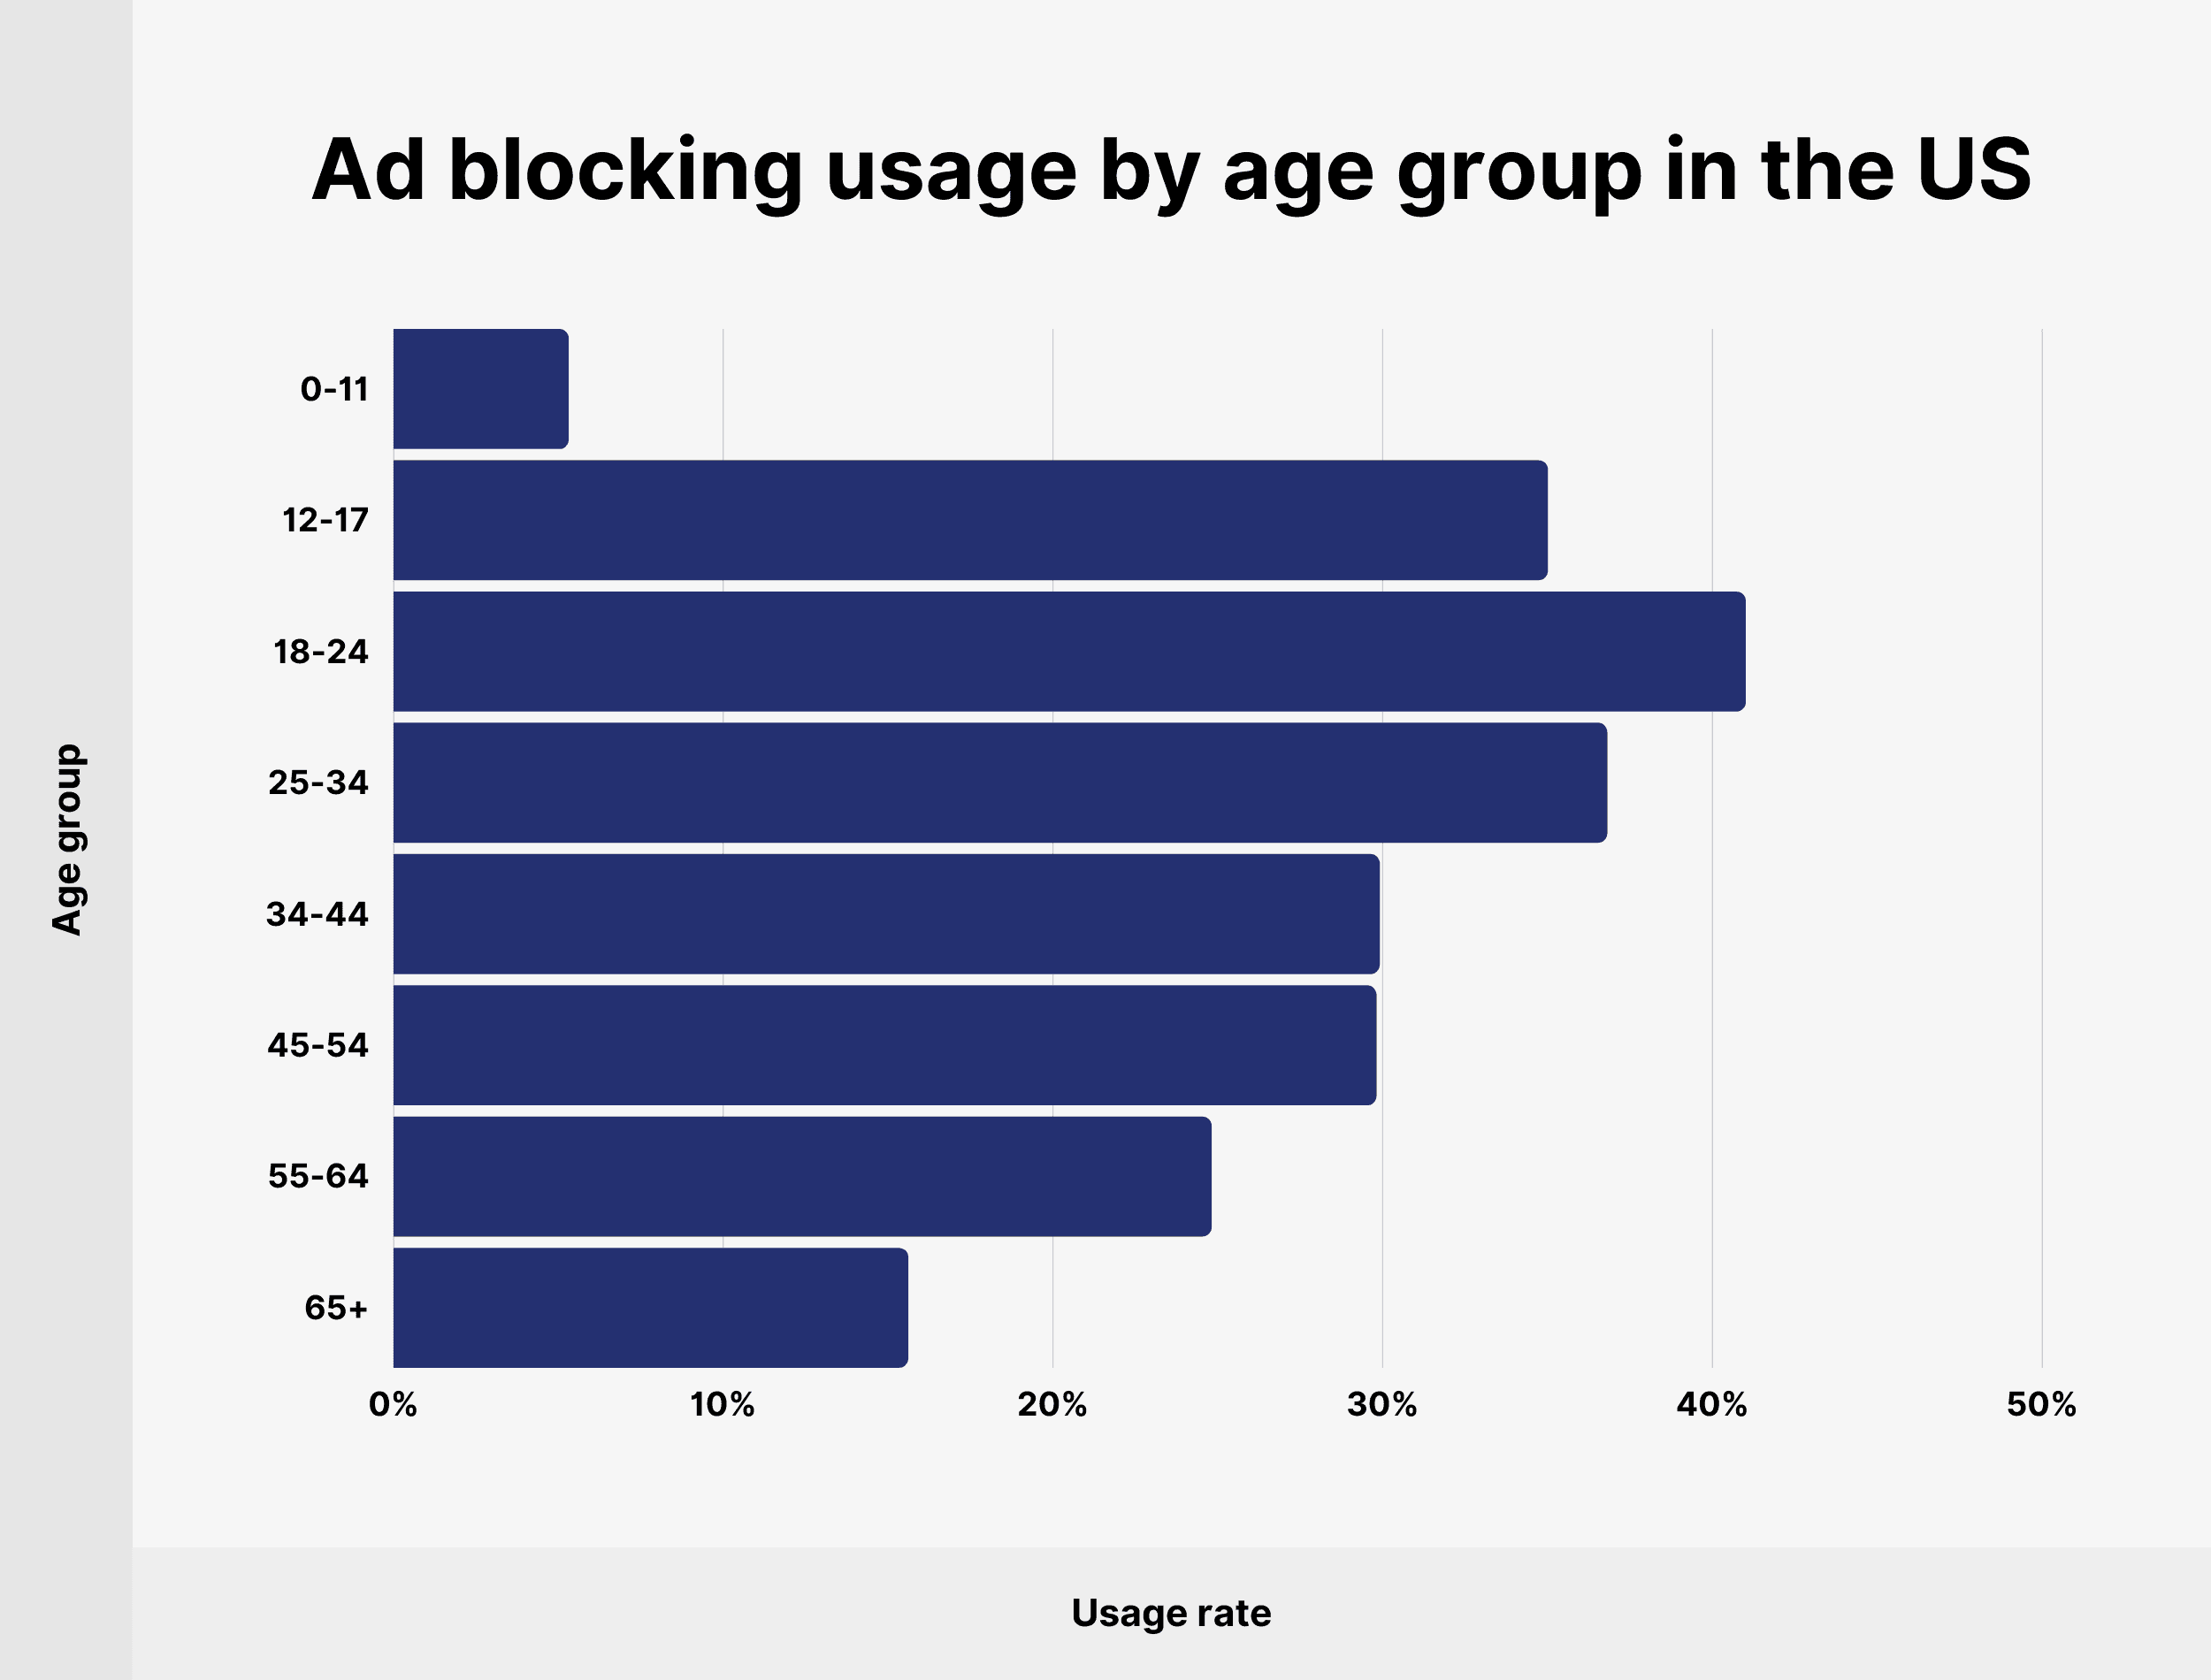 Ad blocking usage by age group in the US